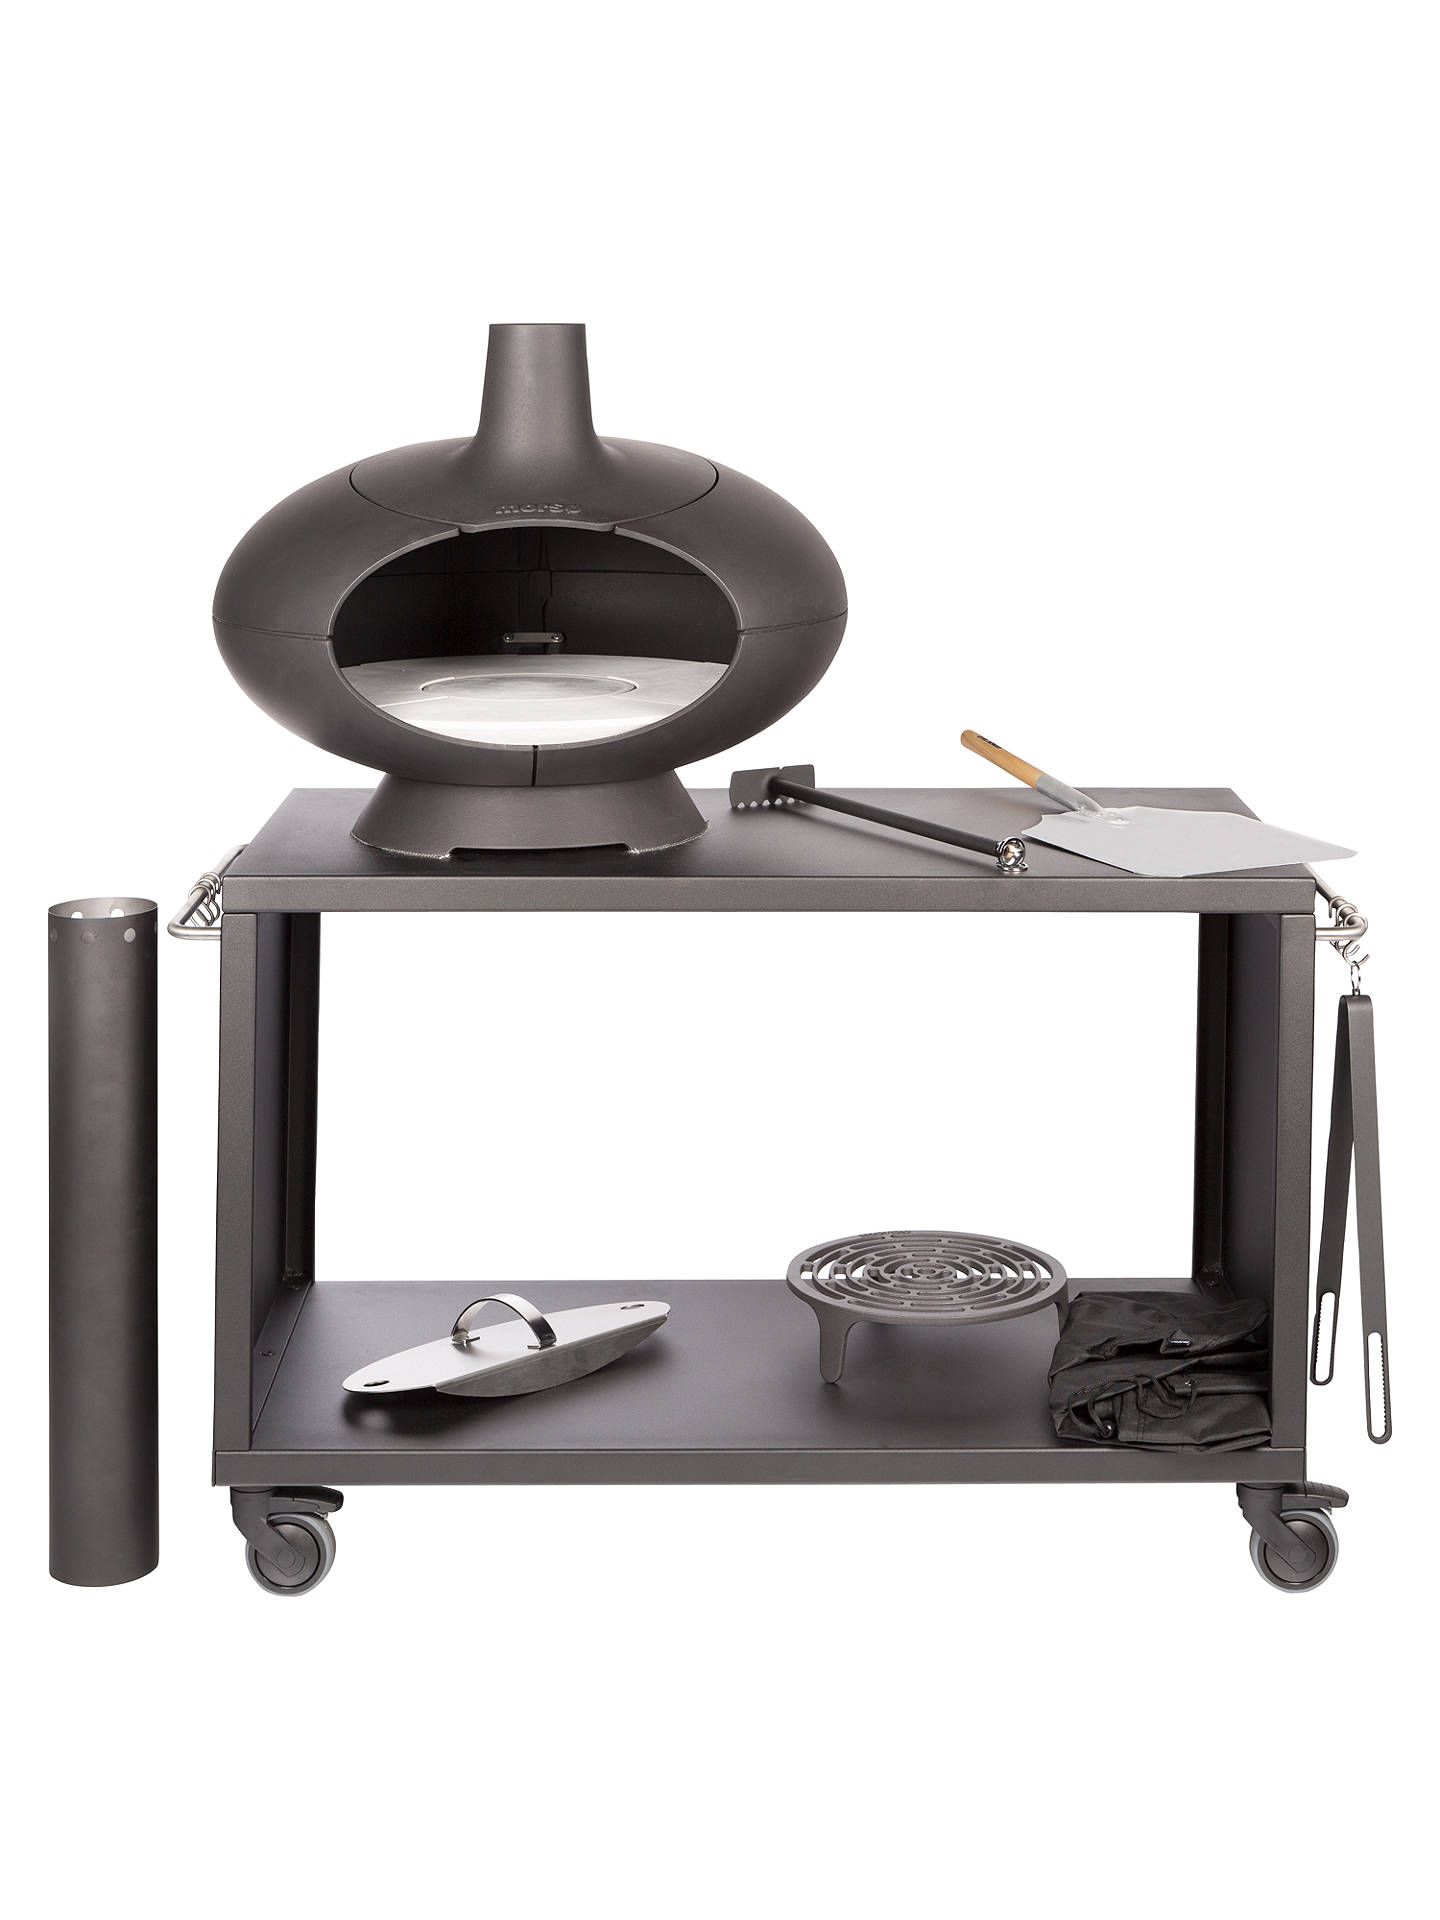 9f025d2249e Buy Morsø Forno Oven Outdoor Package Online at johnlewis.com ...